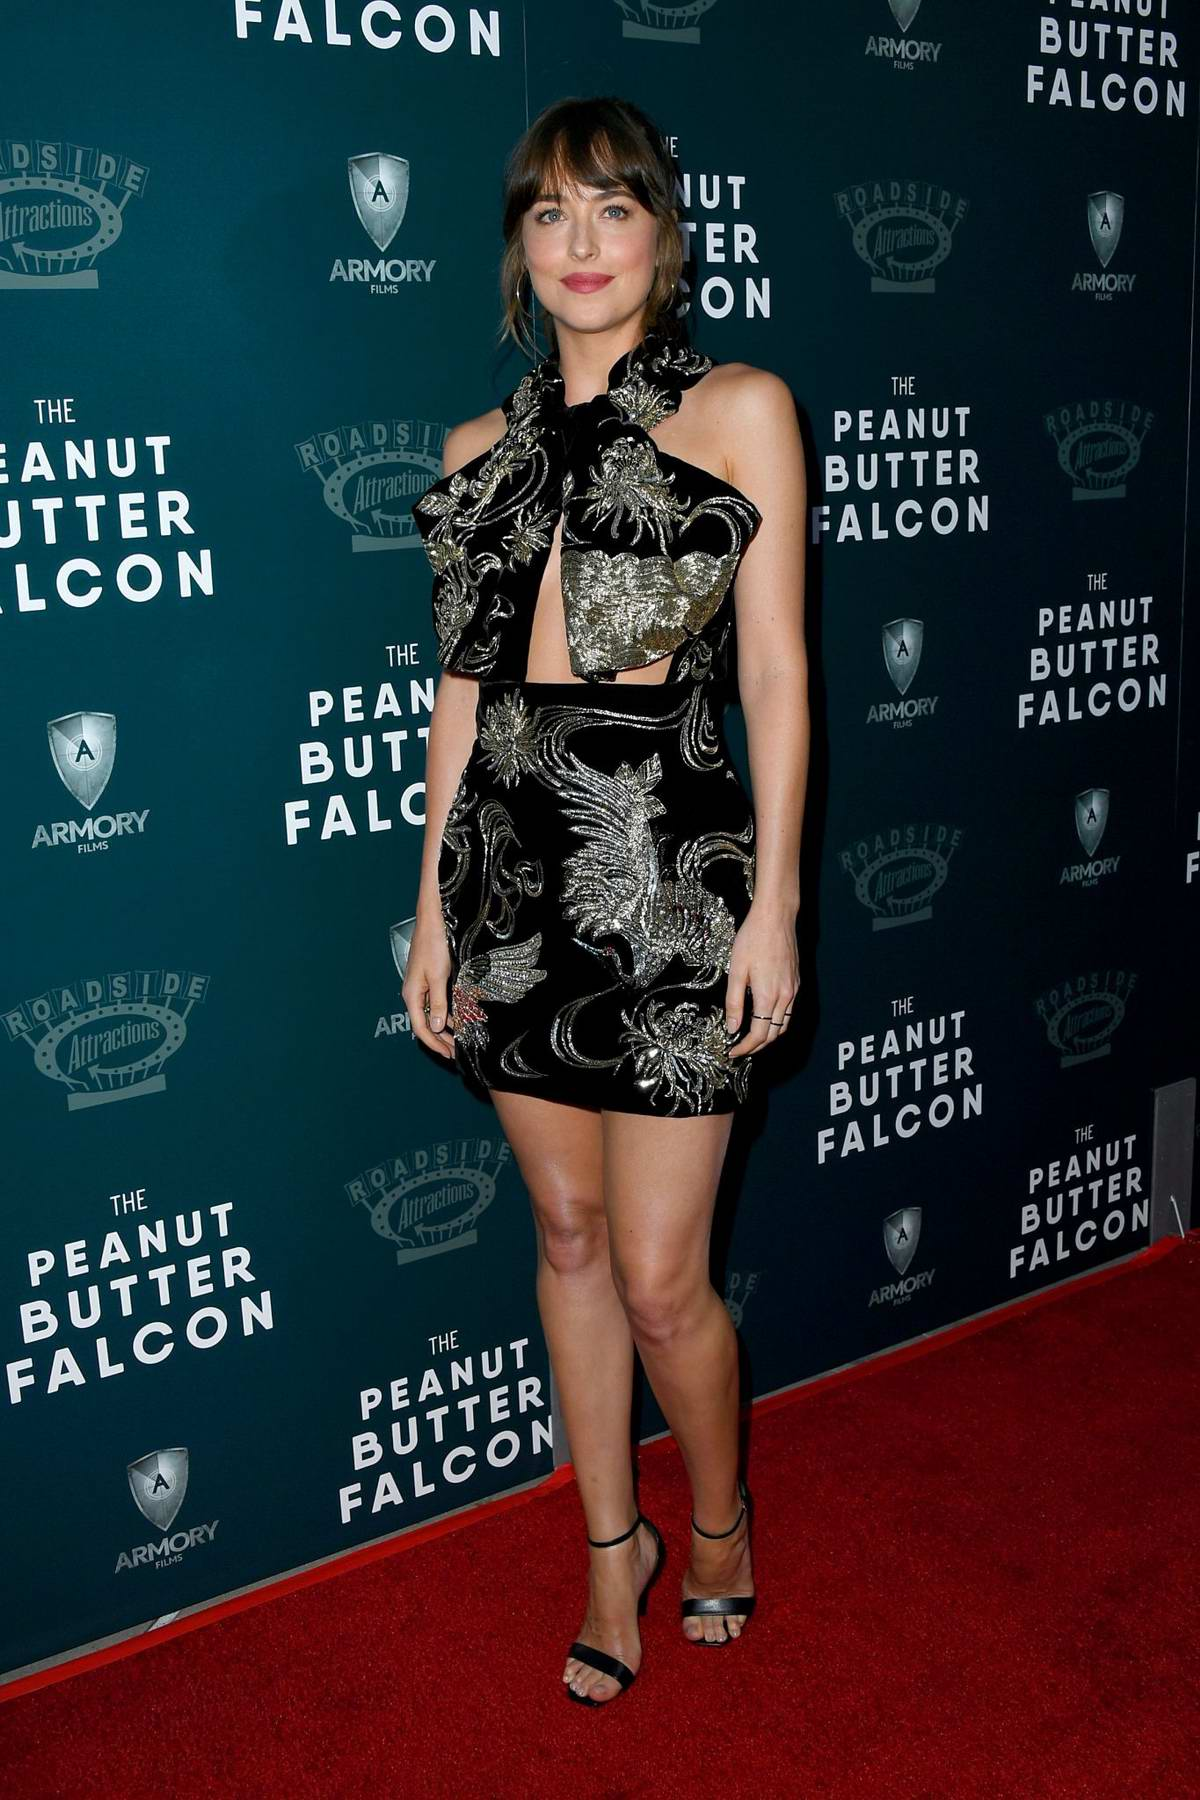 Dakota Johnson attends the Special Screening of 'The Peanut Butter Falcon' at Arclight Hollywood in Hollywood, California